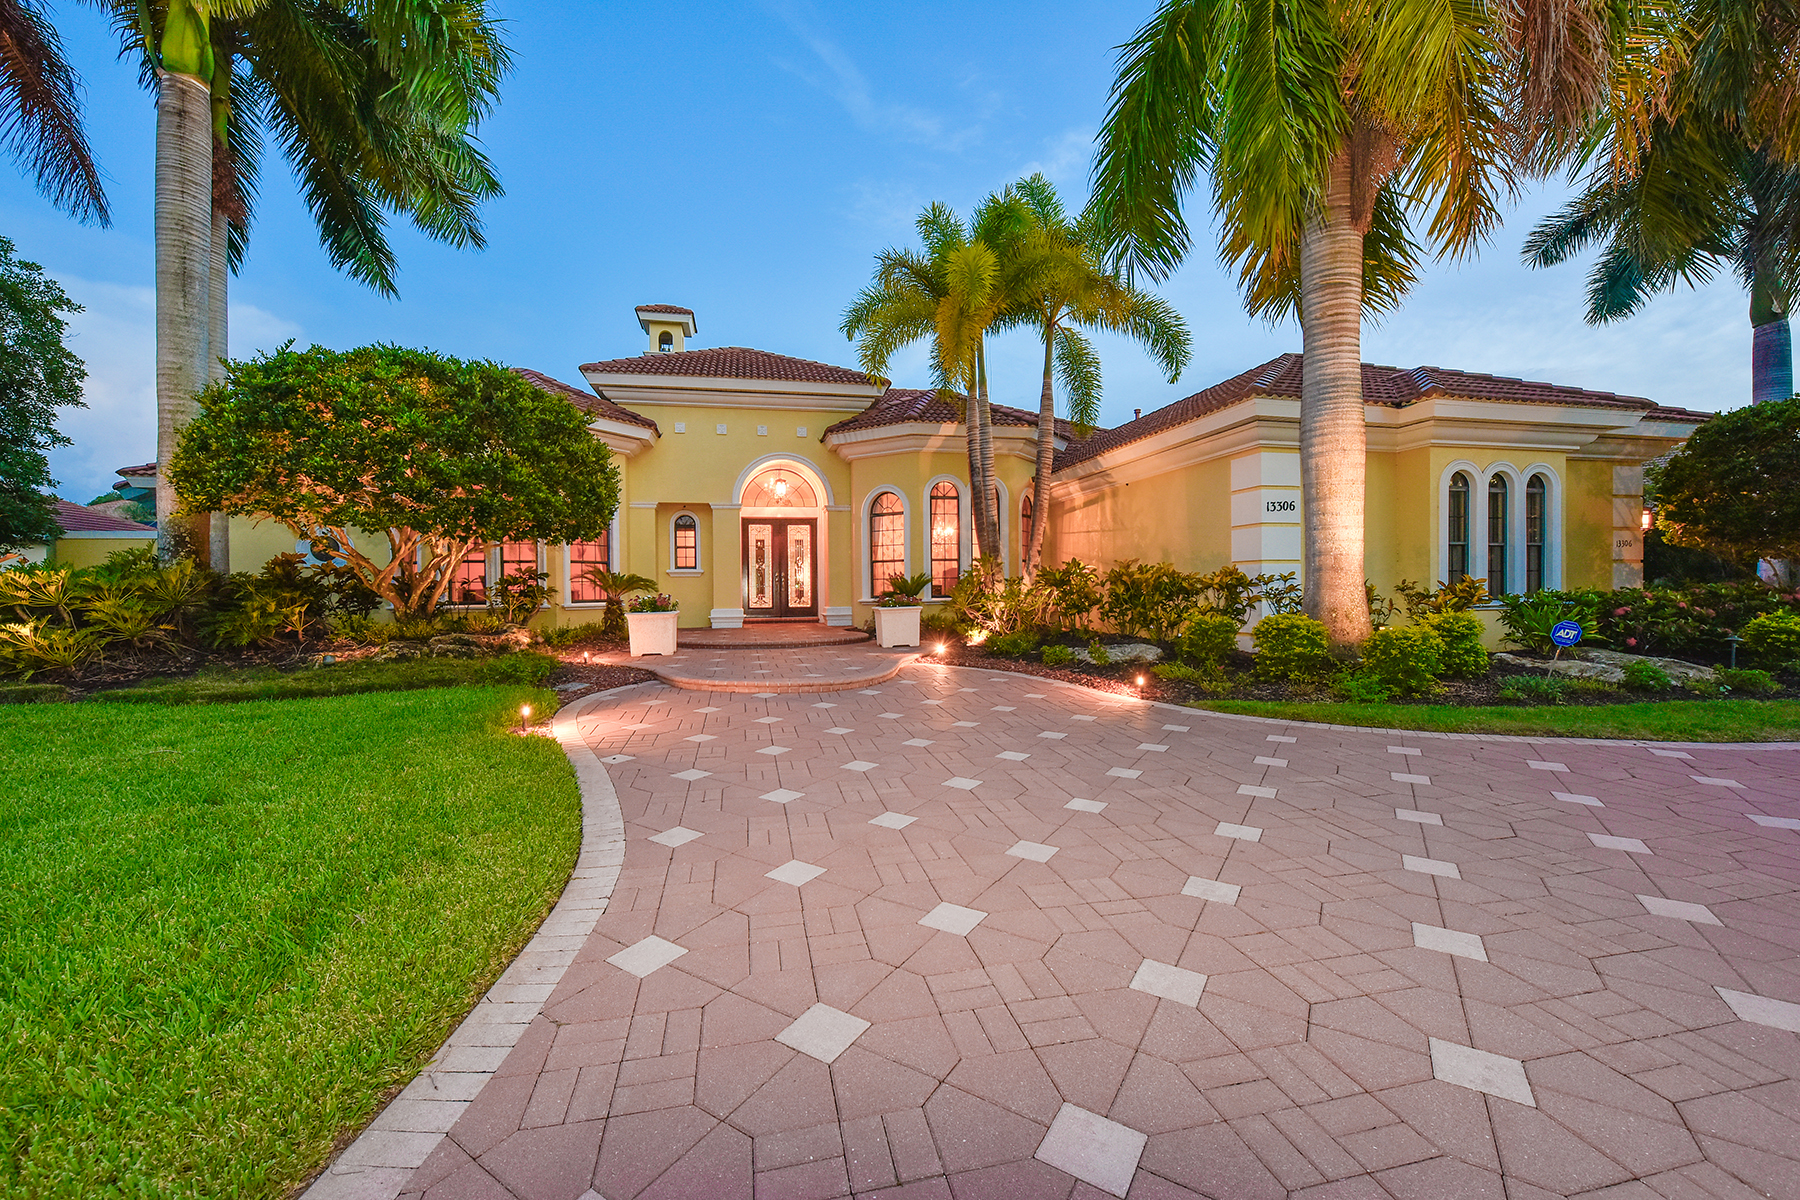 Single Family Home for Sale at LAKEWOOD RANCH COUNTRY CLUB 13306 Palmers Creek Terr Lakewood Ranch, Florida, 34202 United States